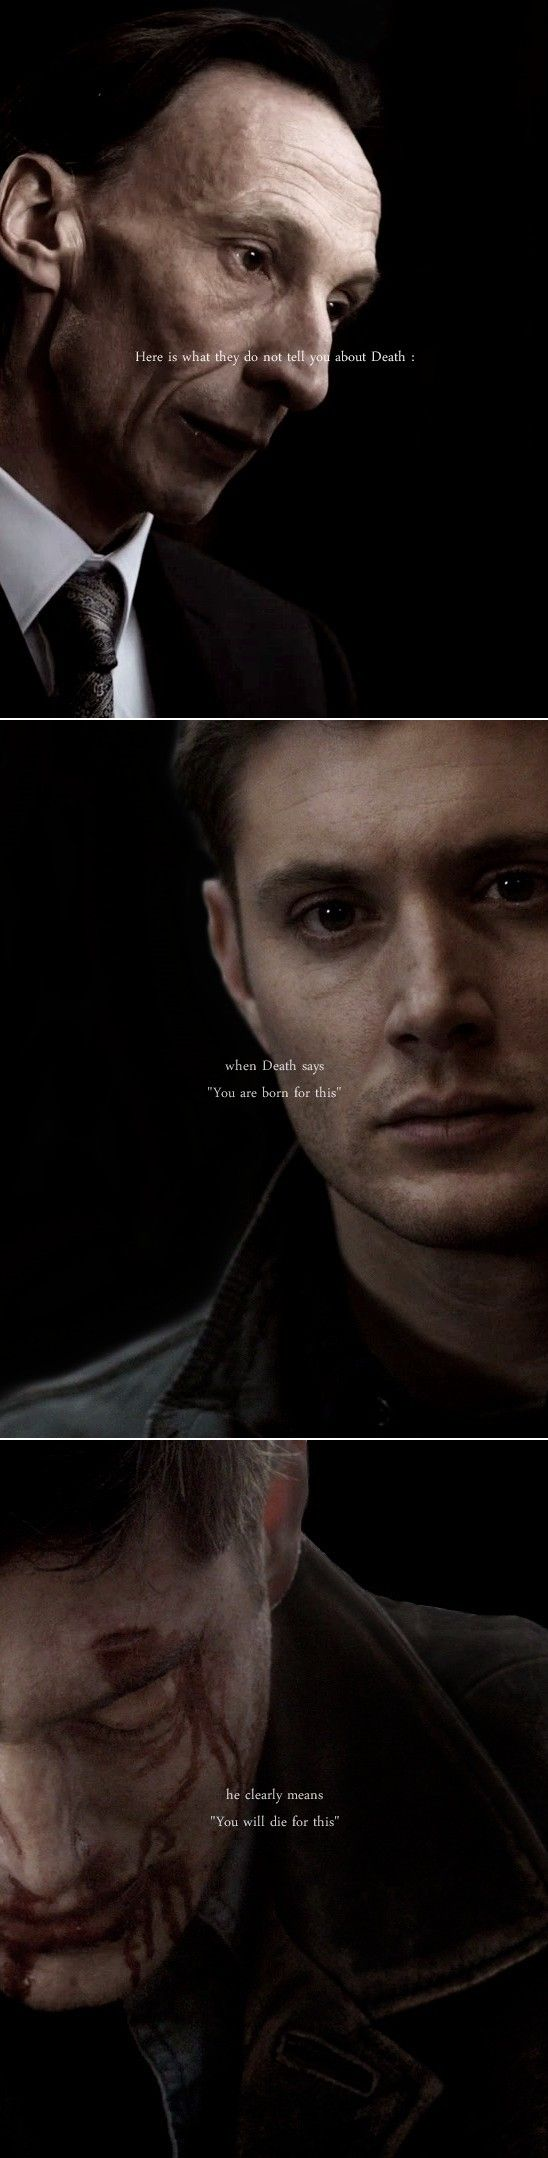 "Dean Winchester: ""But then again… nothing ever really ends, does it ?""  #spn"